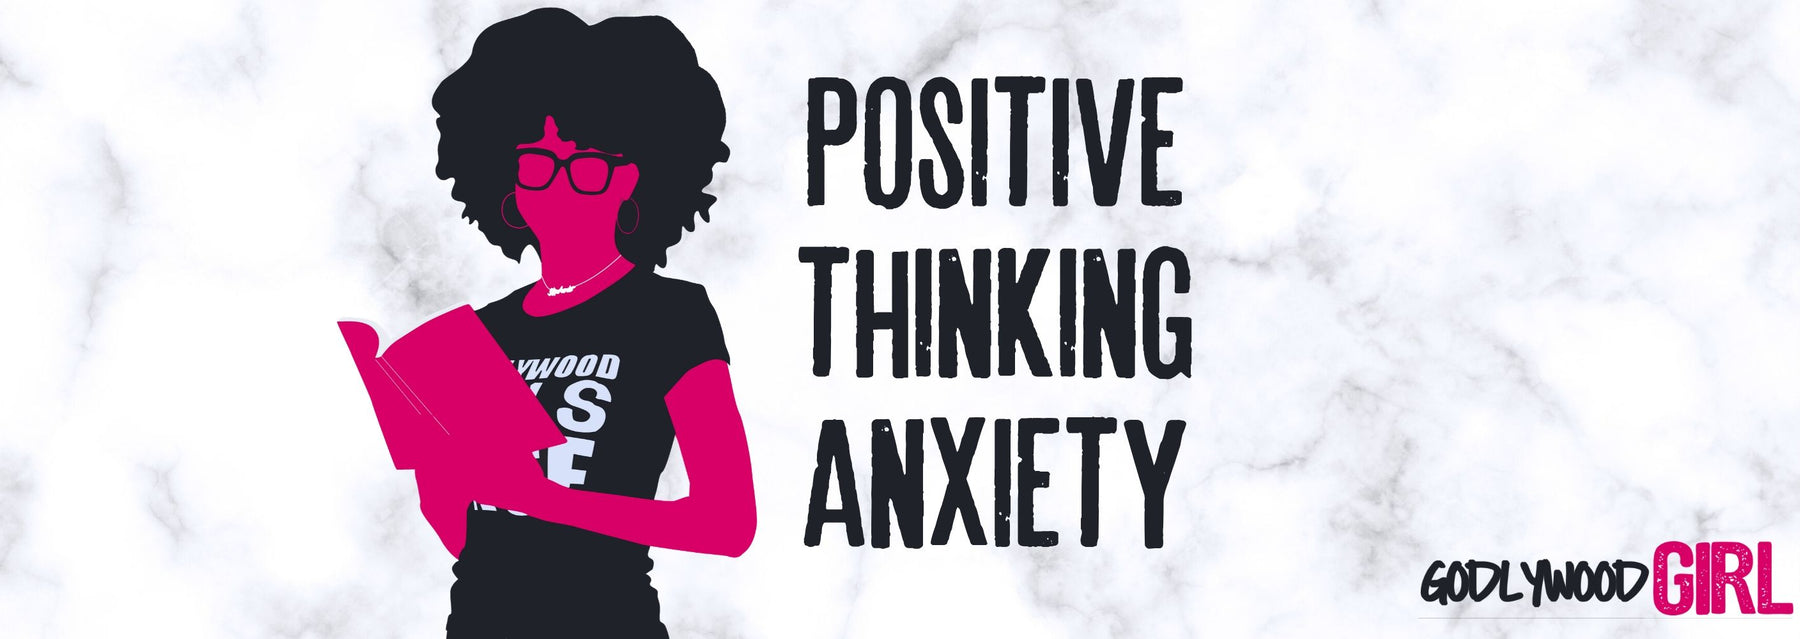 POSITIVE THINKING ANXIETY (How to Break Your Negative Thinking) || HOW TO